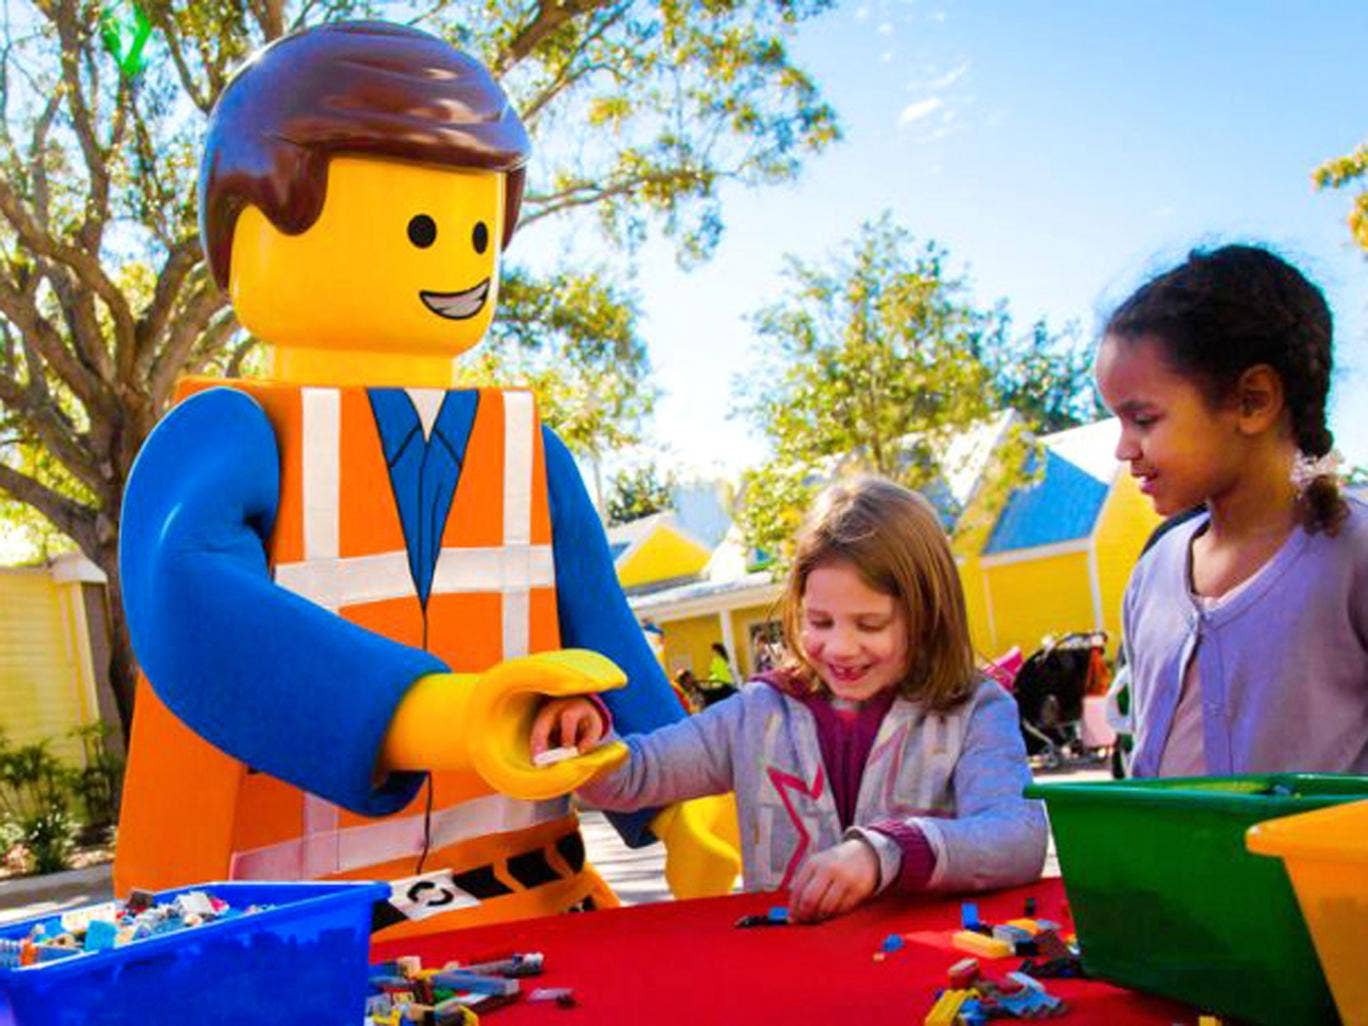 Next weekend, the stars of The Lego Movie will be dropping in to Legoland Windsor Resort to open the 2014 season